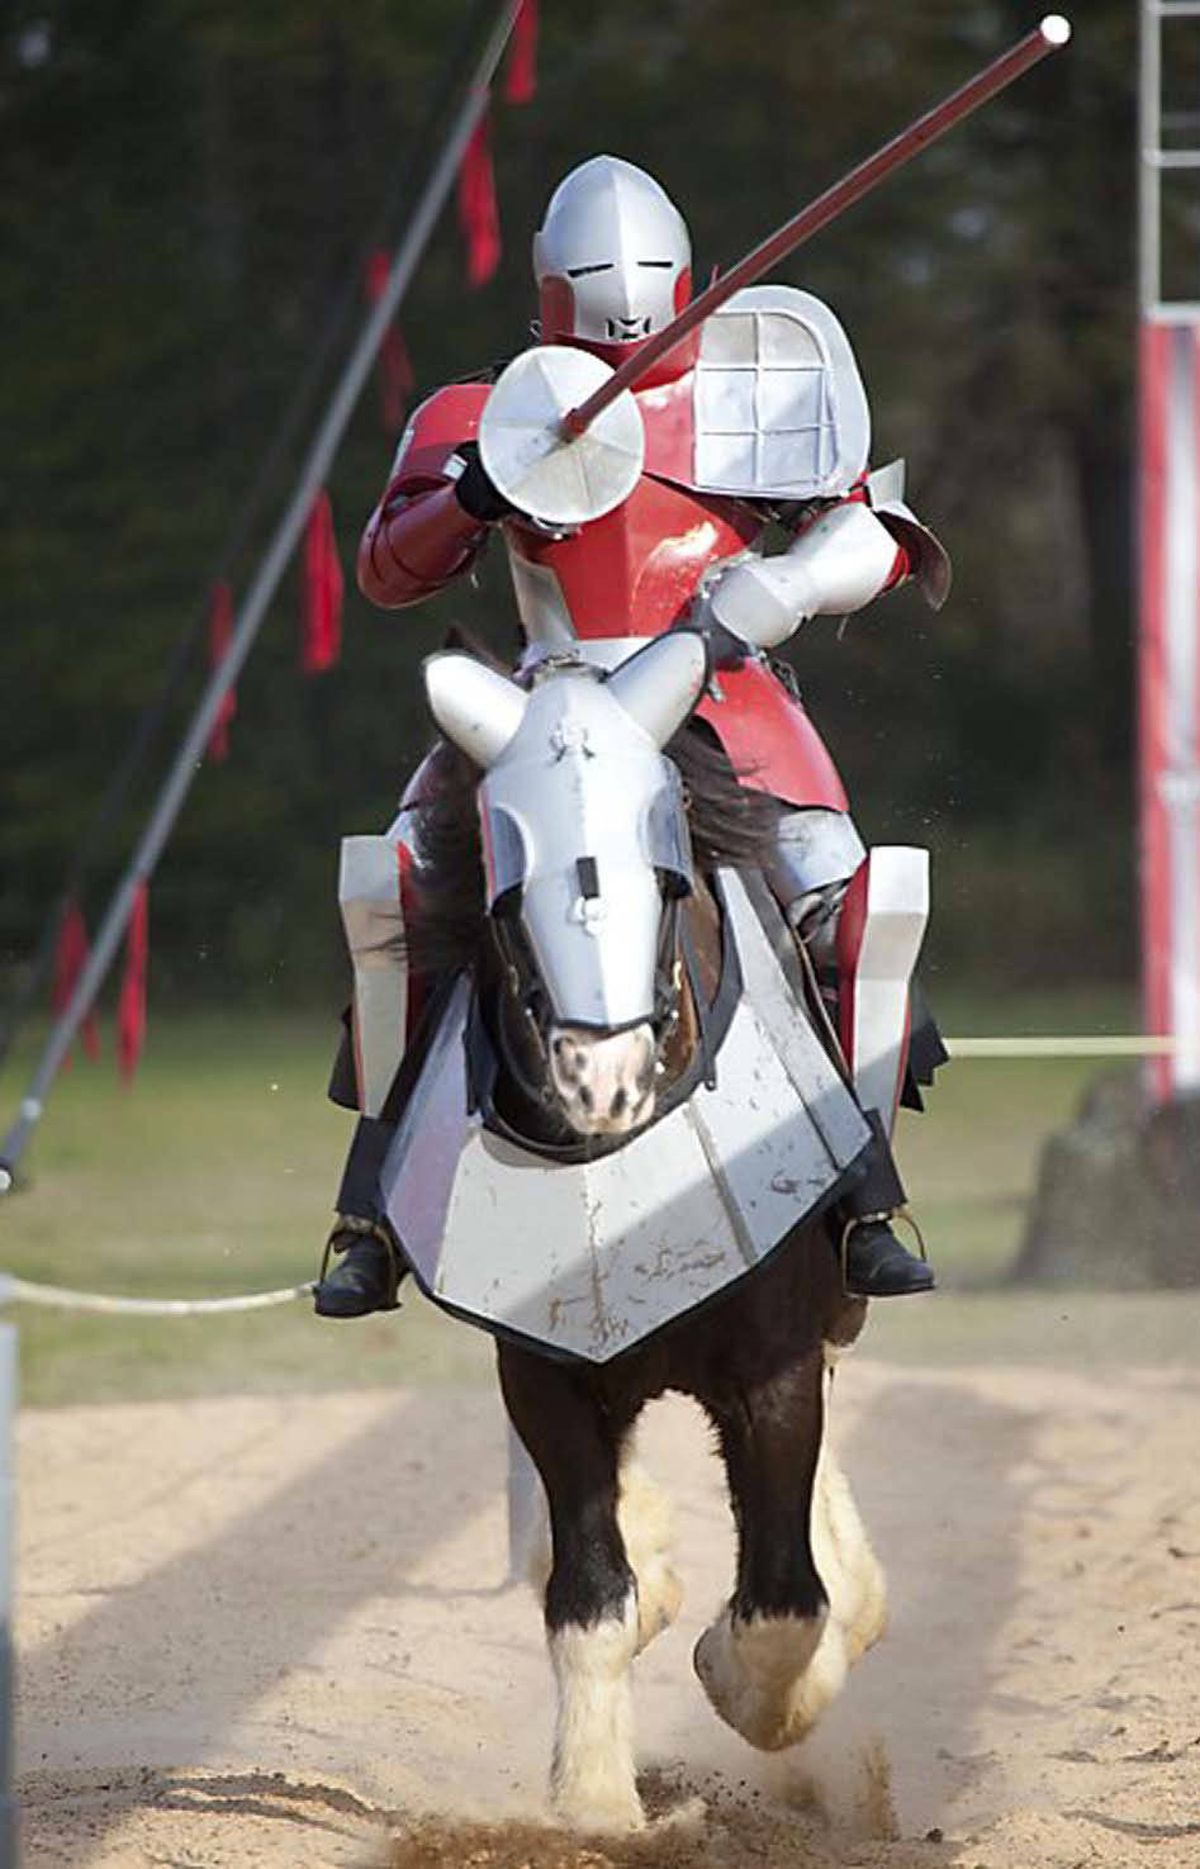 REALITY Full Metal Jousting History, 7 p.m. Who says the reality-TV well has run dry? Hailing from the U.S. History Channel, this new show reaches all the way back to medieval times to resurrect the lost art of jousting, which involves two people on horseback racing at breakneck speed toward each other while wielding lances (basically long sticks with padded ends). In this case, the format features two teams of eight competing in one-on-one jousts, with the last contestant standing receiving the $100,000 (U.S.) grand prize, which should be enough to cover the subsequent medical bills. Let the games begin!